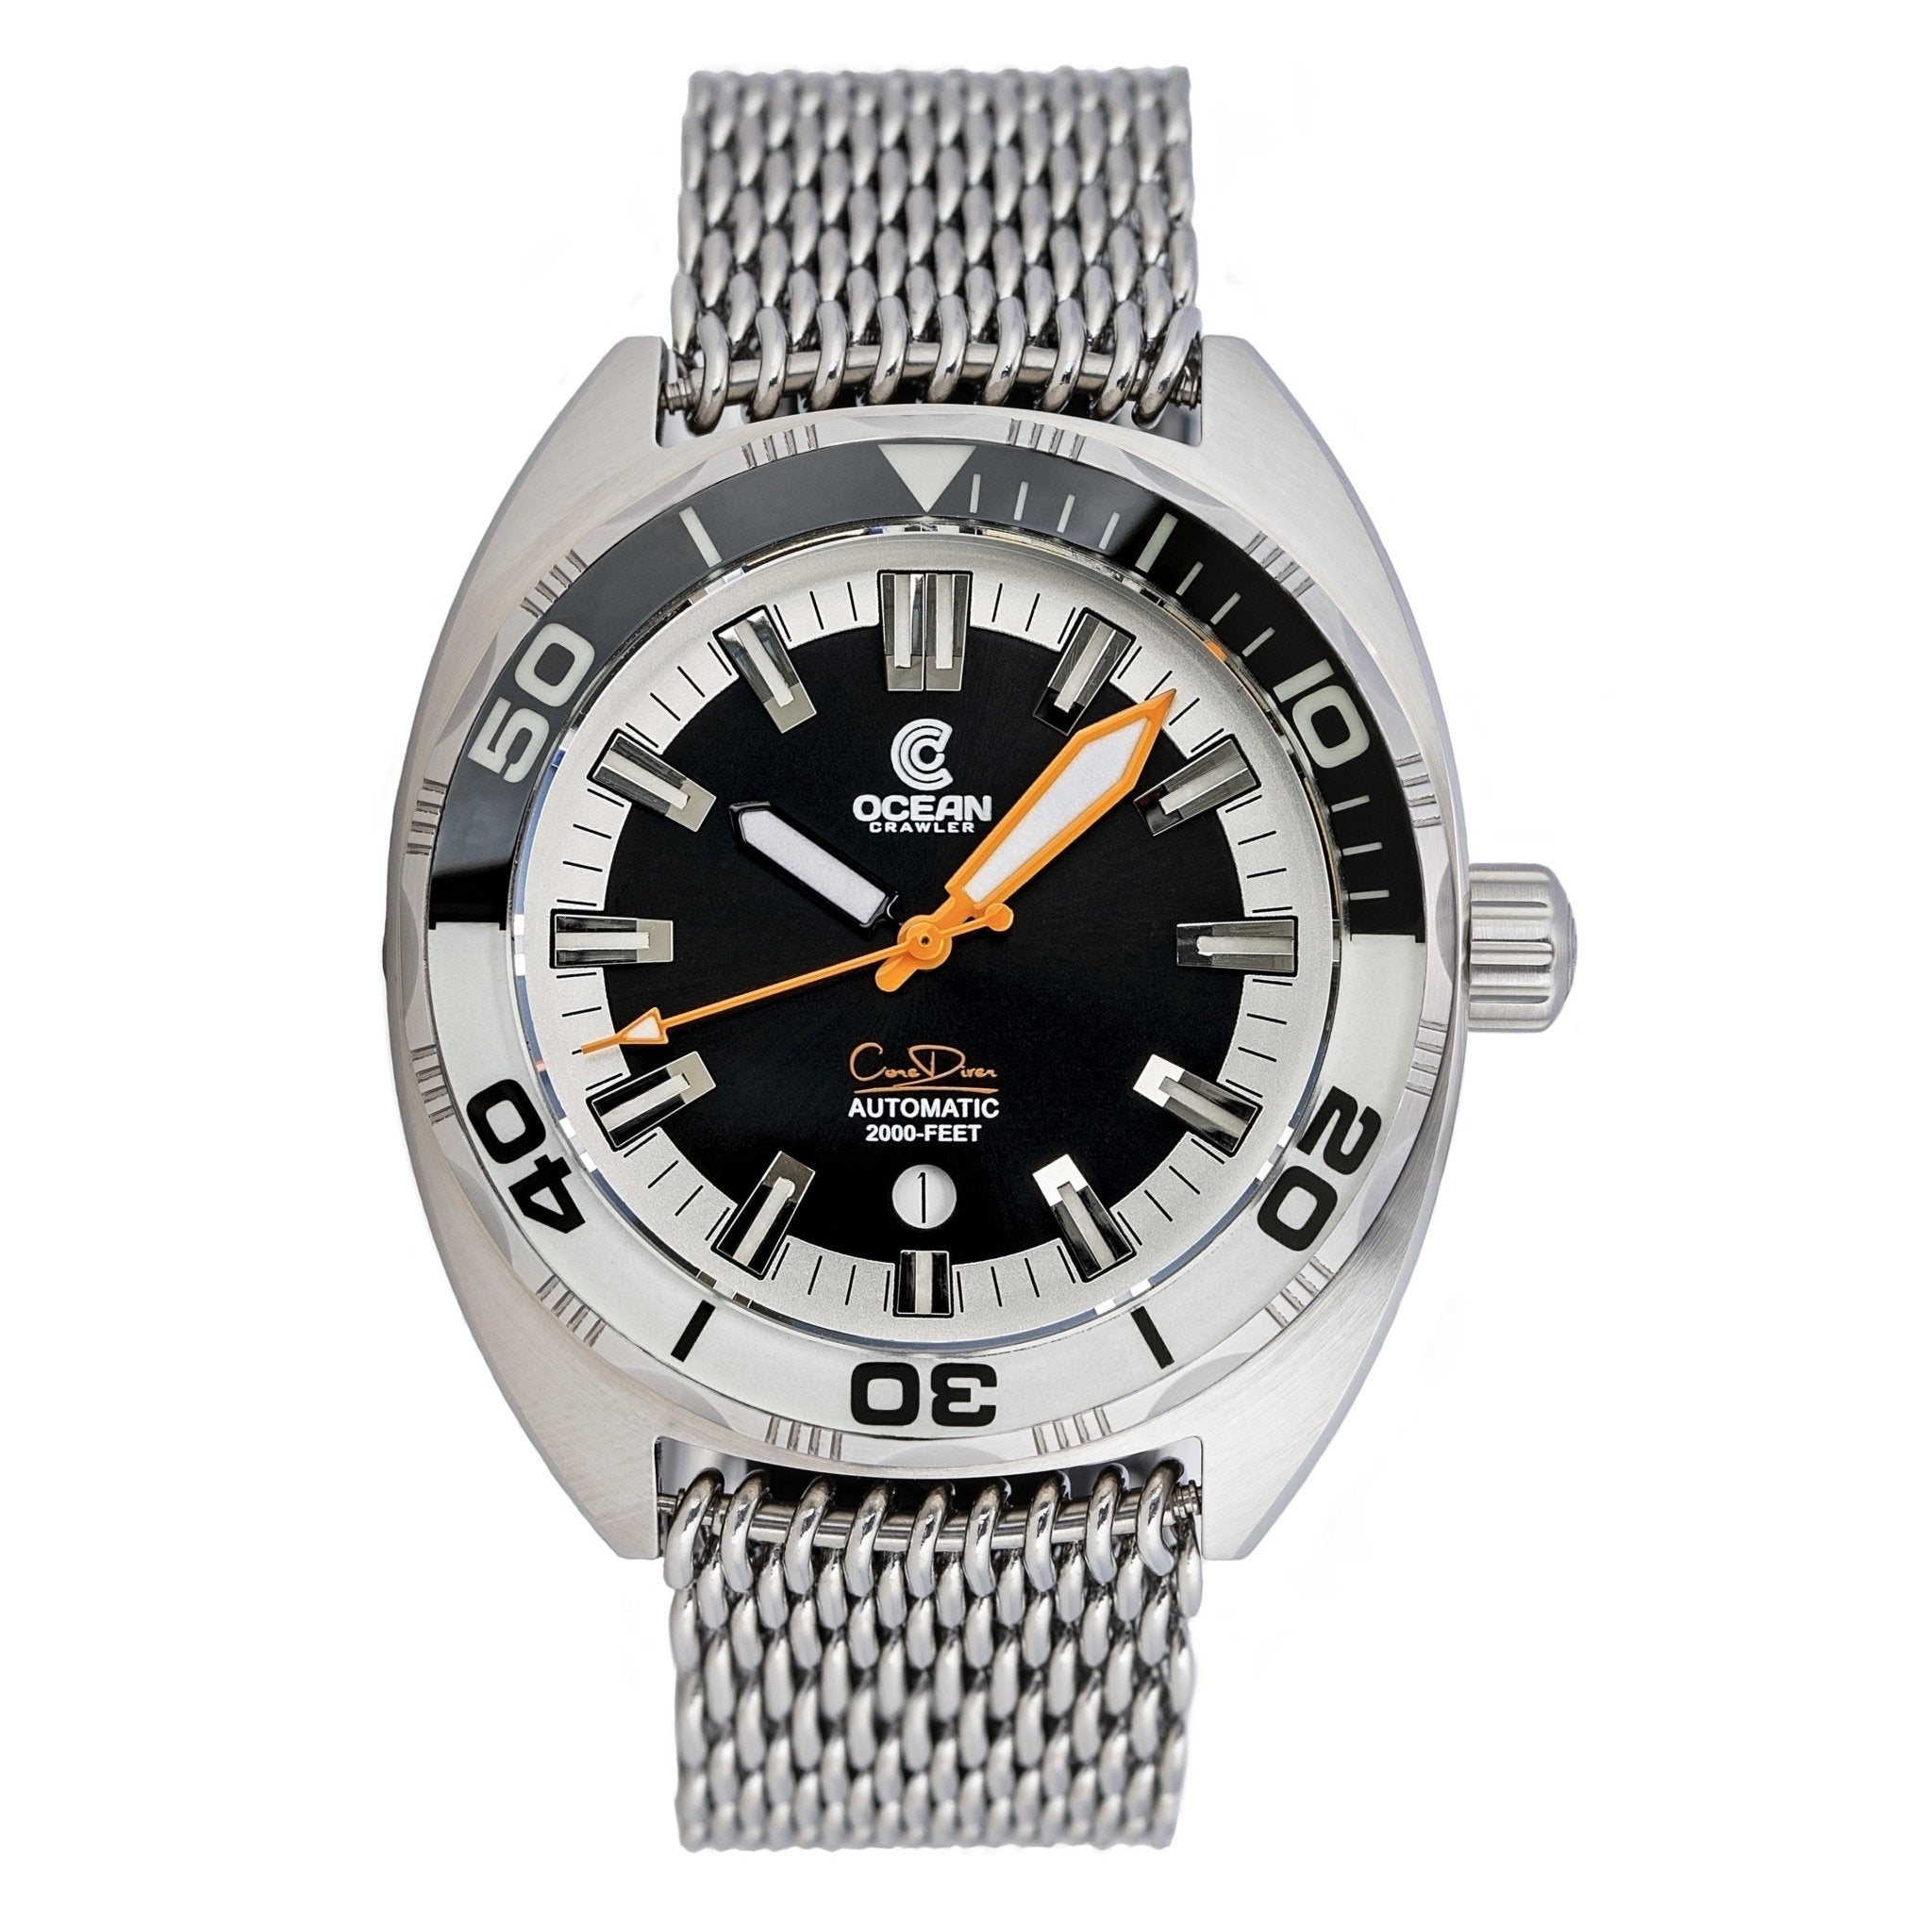 Ocean Crawler Core Diver - Black/White - Ocean Crawler Watch Co.